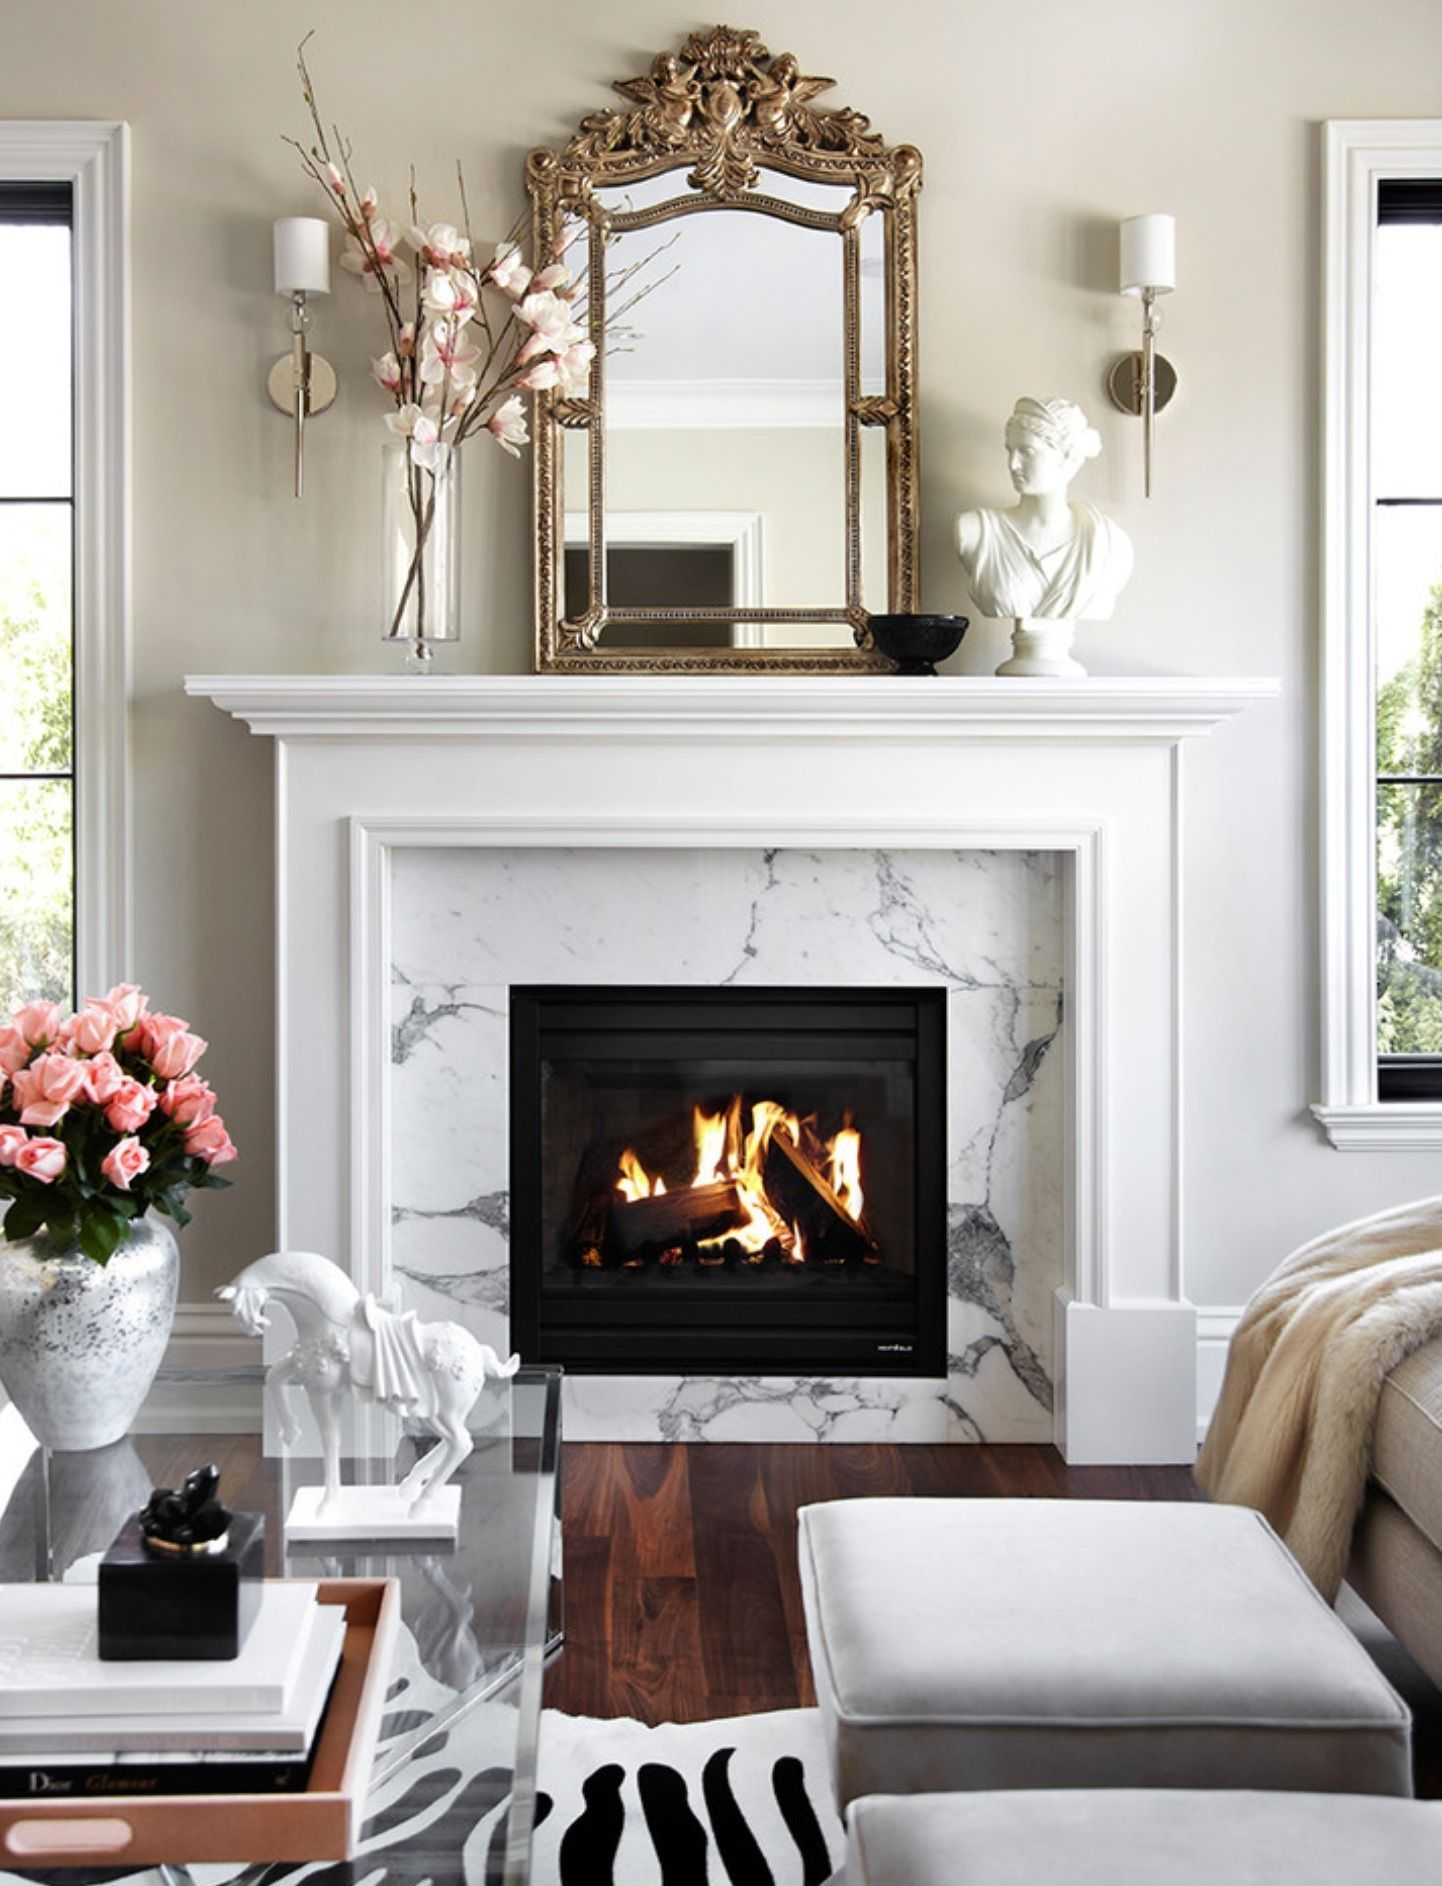 Save Money With These Interior Design Tips * Read more info by clicking the link on the image. #homeimprovement #WonderfulInteriorDesignTips